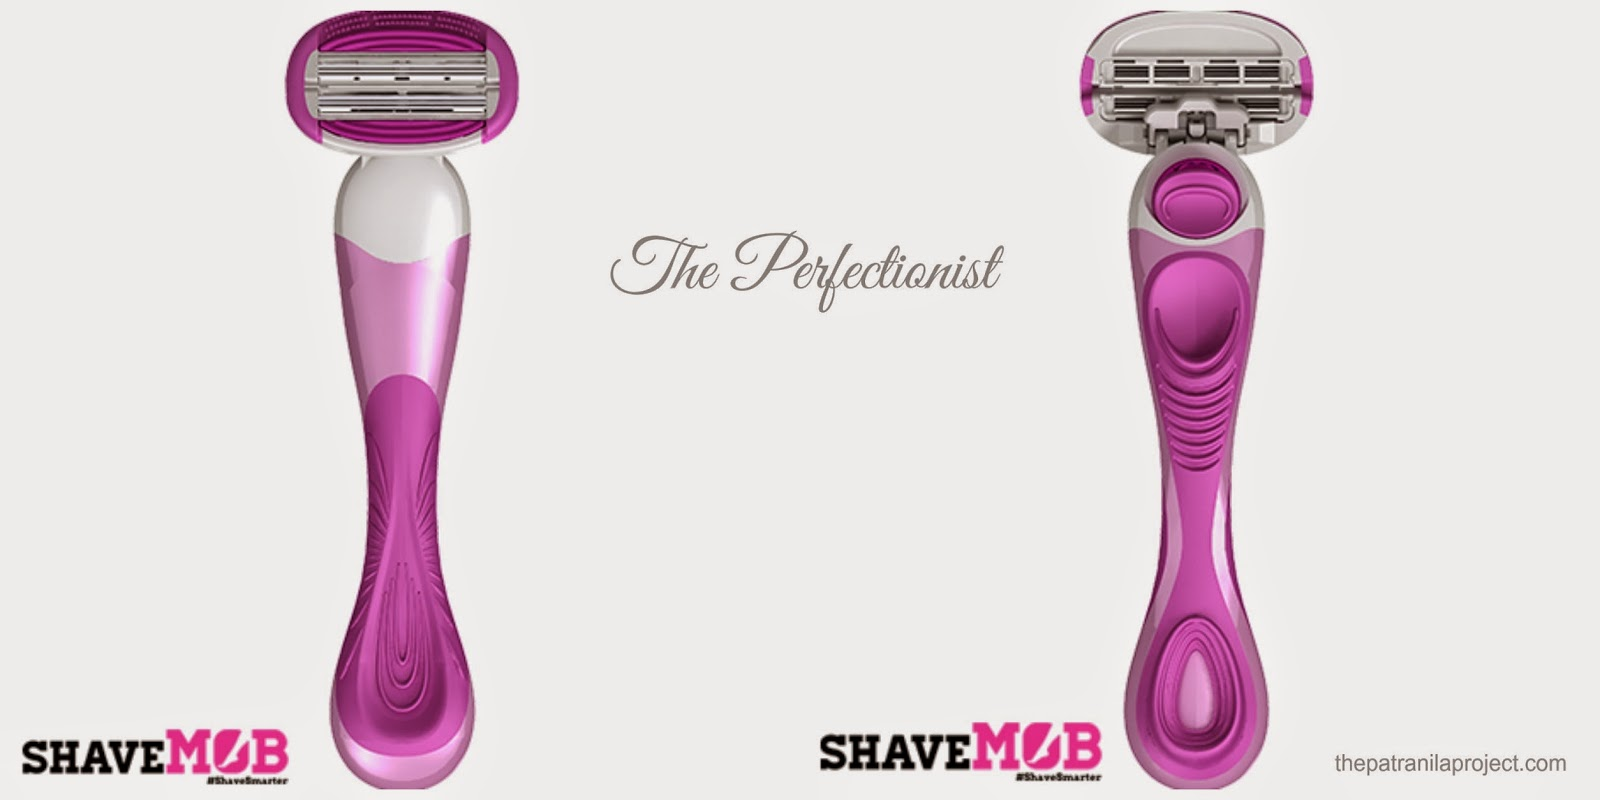 ShaveMob makes the perfect gift.